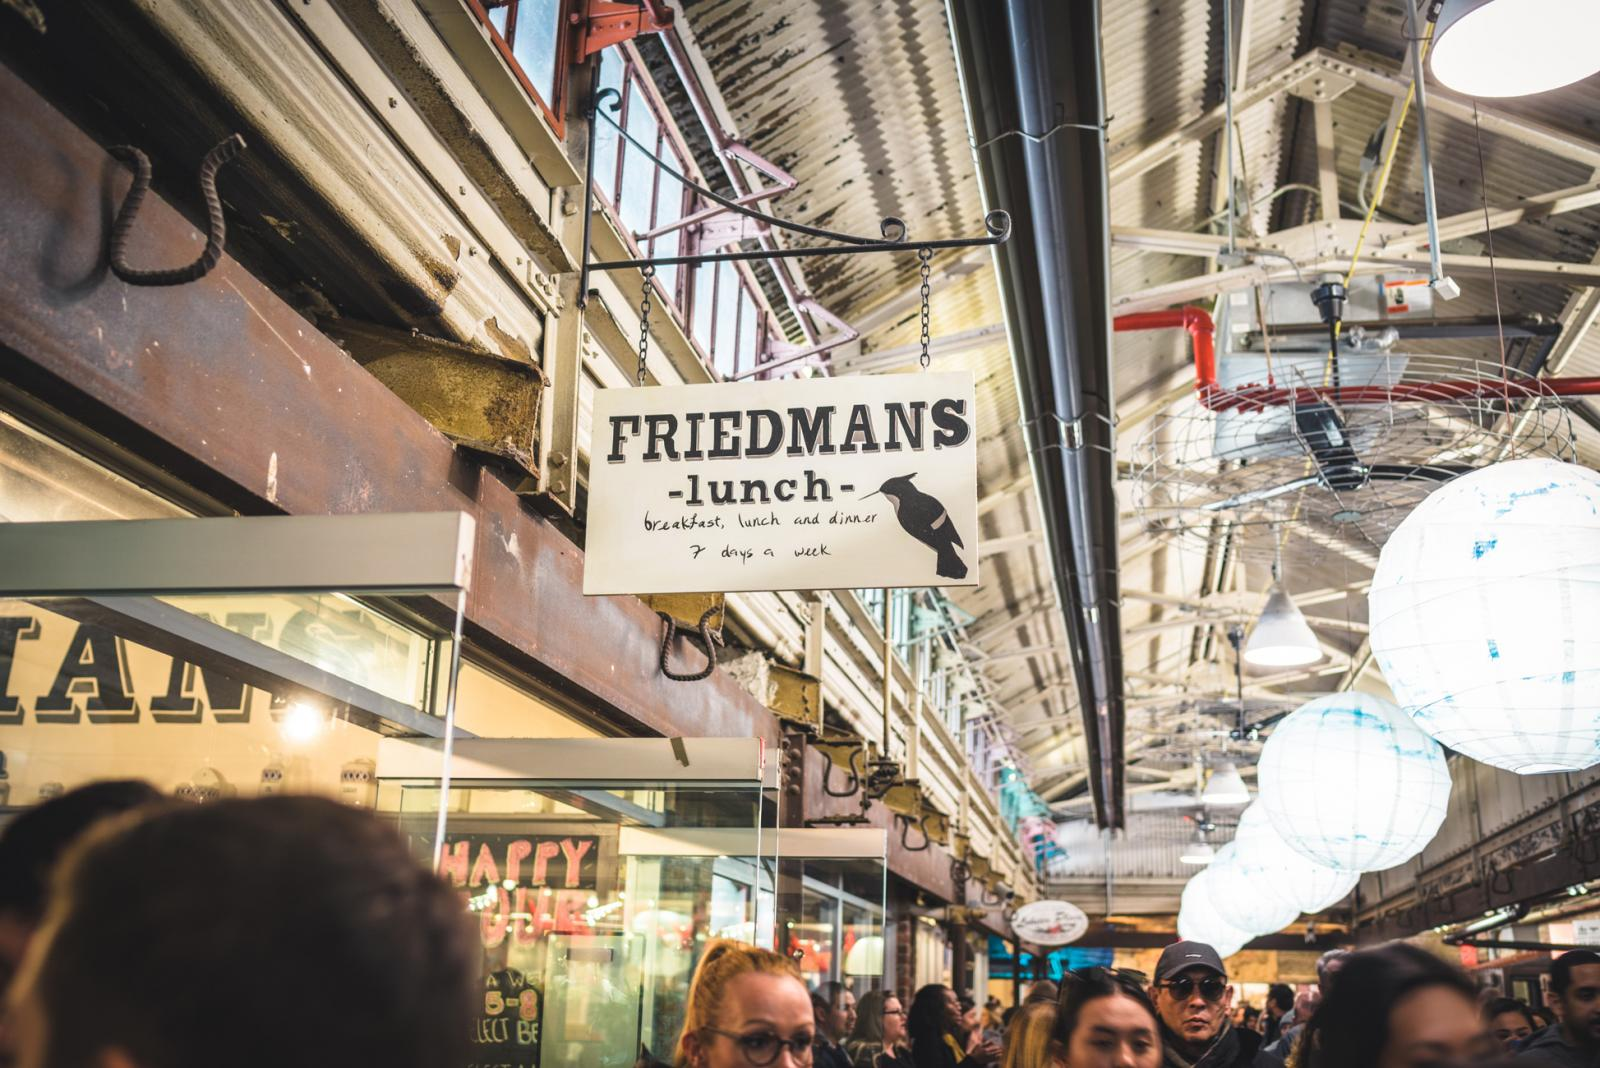 Friedman's Lunch in Chelsea Market